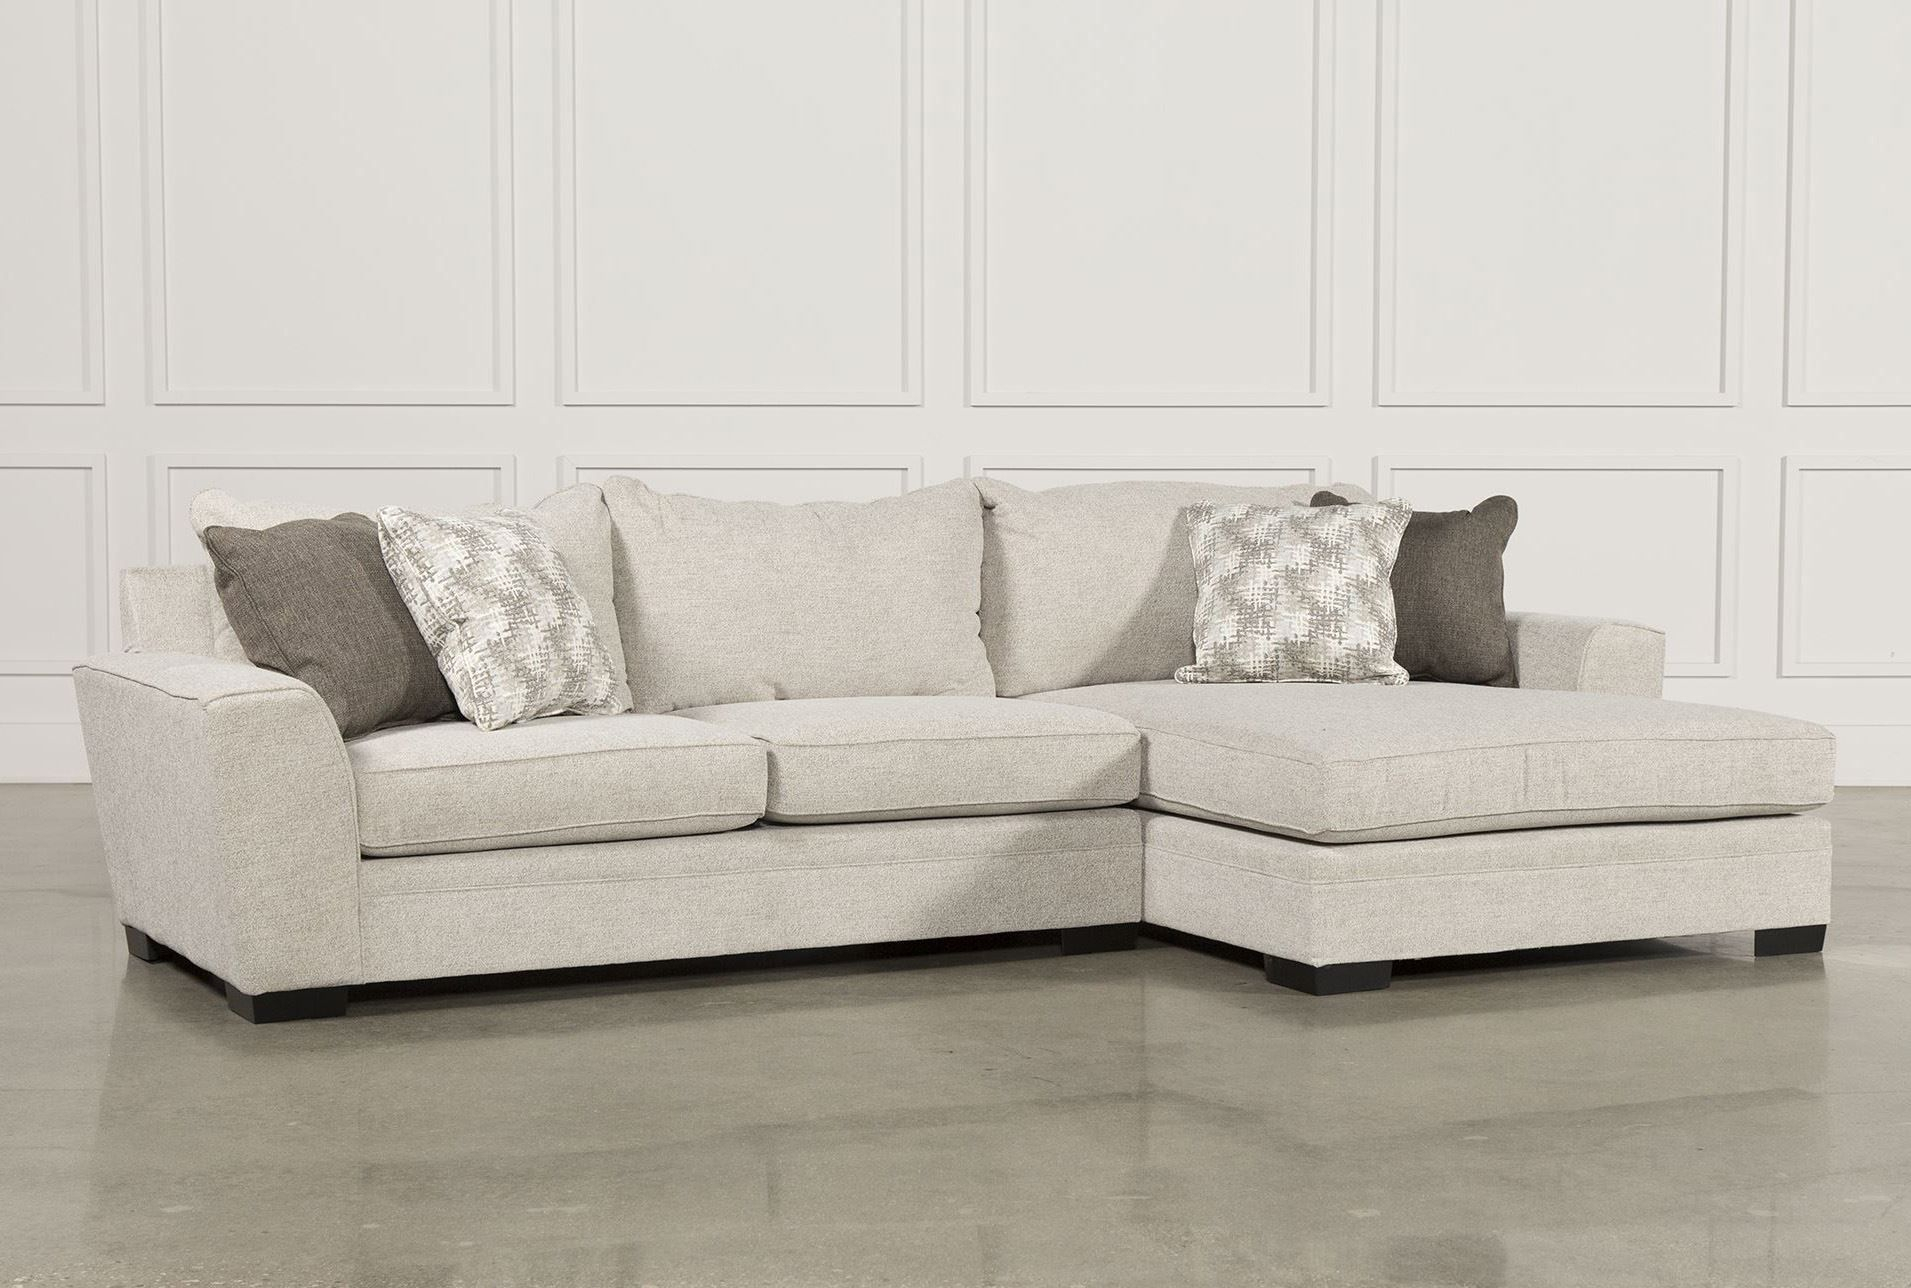 Delano 2 Piece Sectional W/Raf Chaise – Signature | Modern For Delano 2 Piece Sectionals With Laf Oversized Chaise (View 5 of 15)